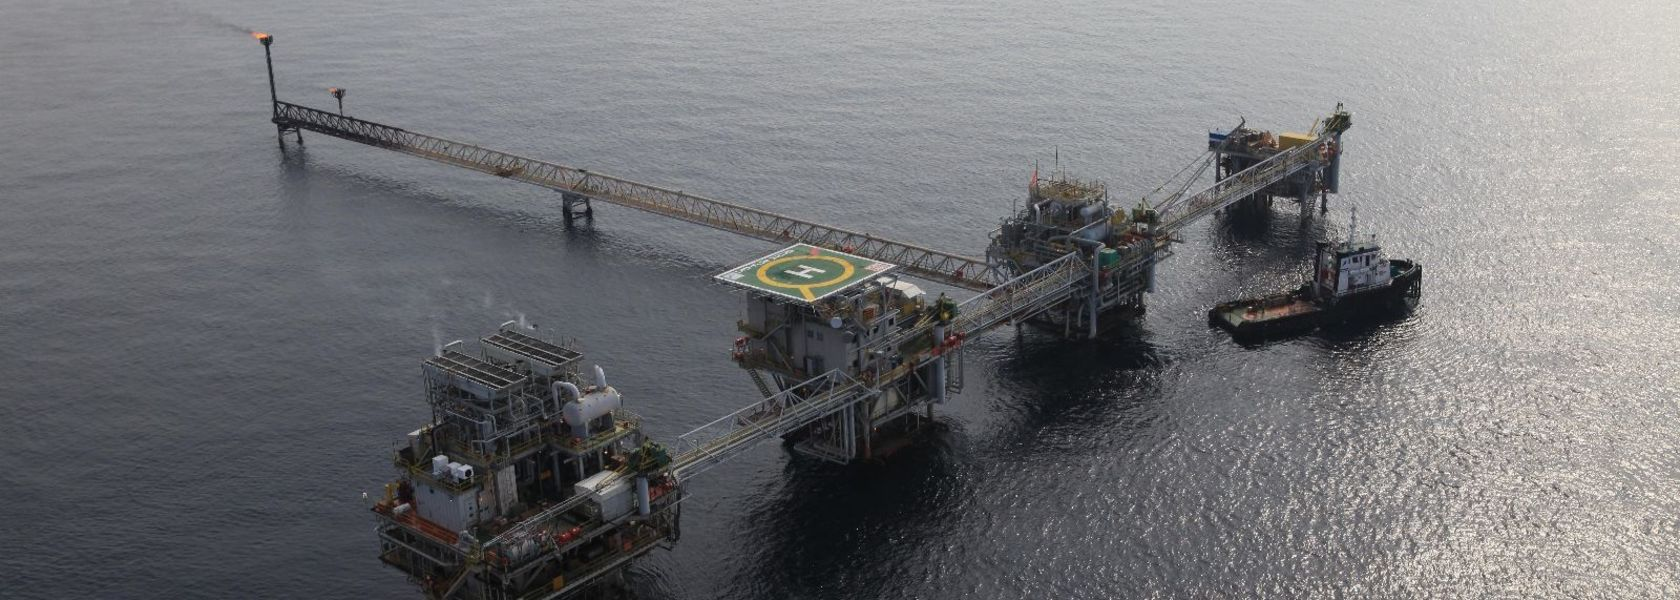 ENB Briefs: Pertamina spill, offshore death, and more